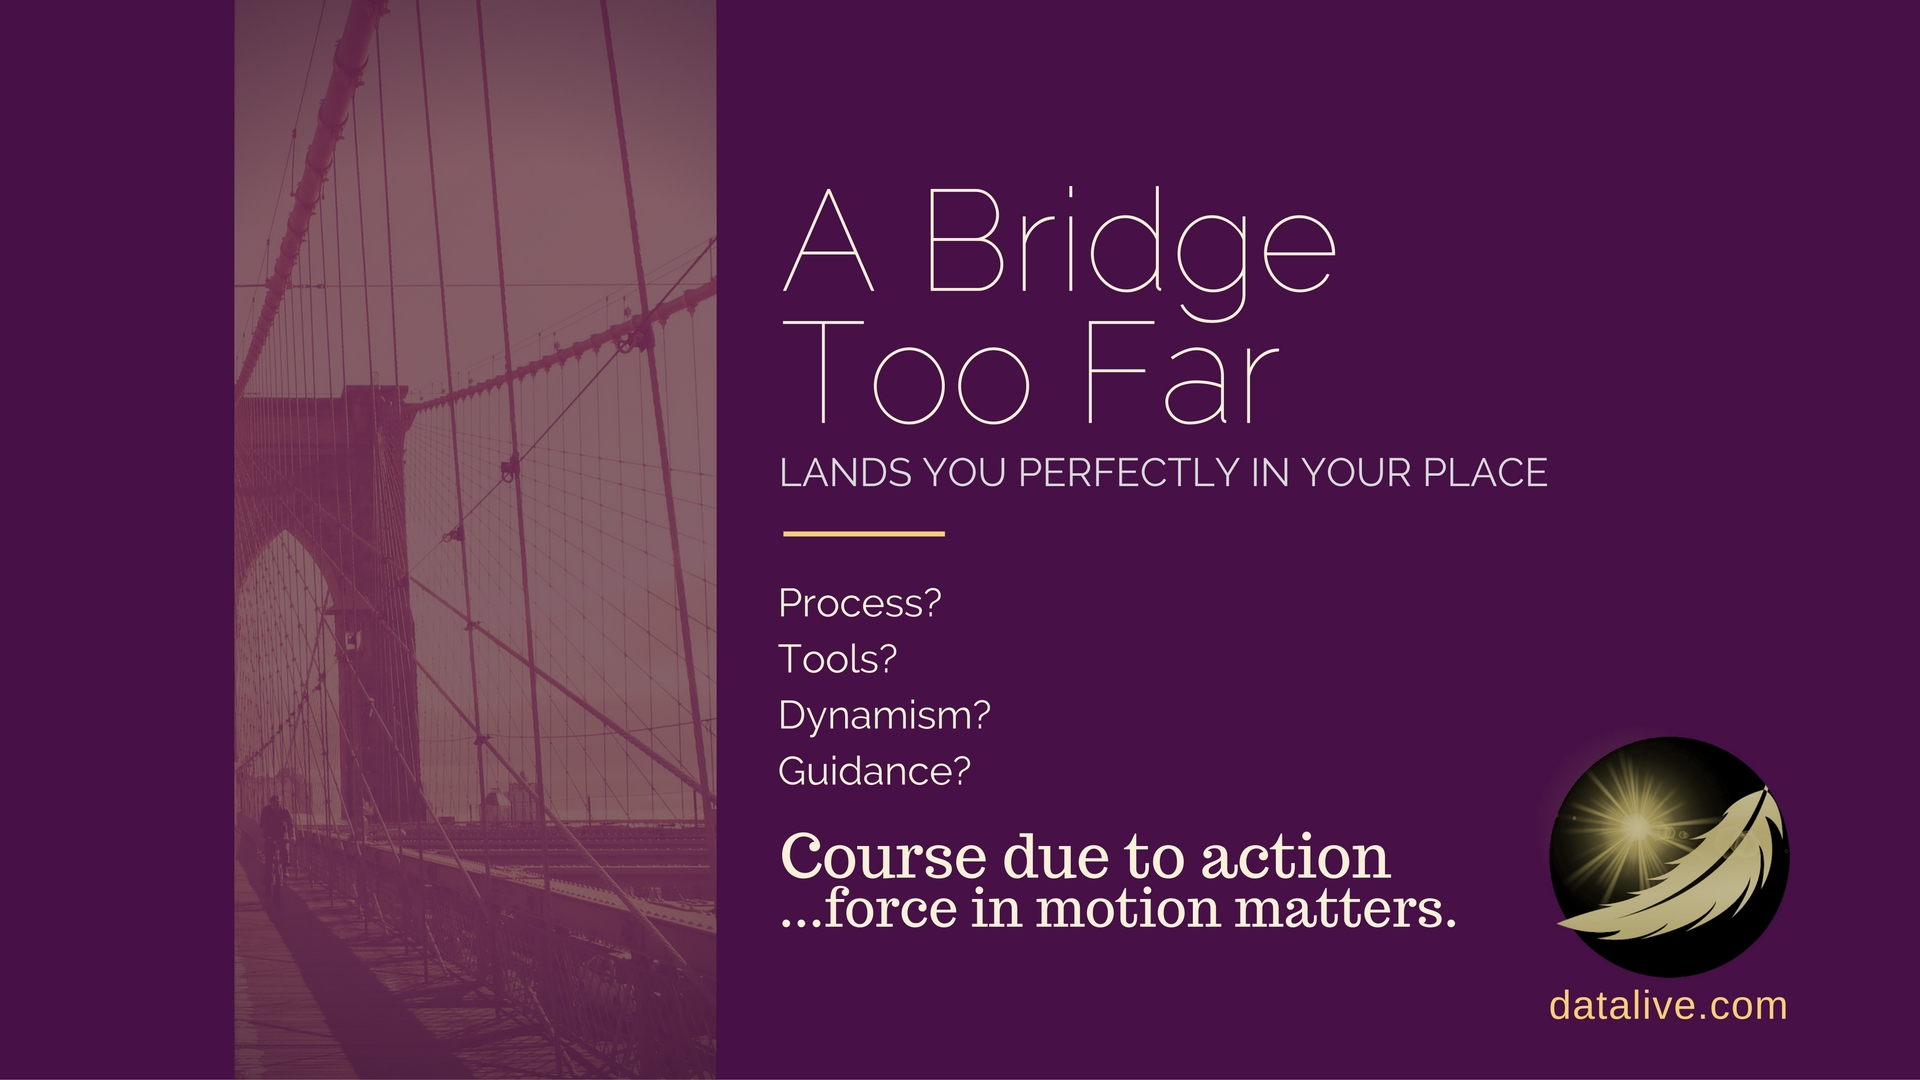 A Bridge Too Far It will be alright datalive live data enterprising solutions